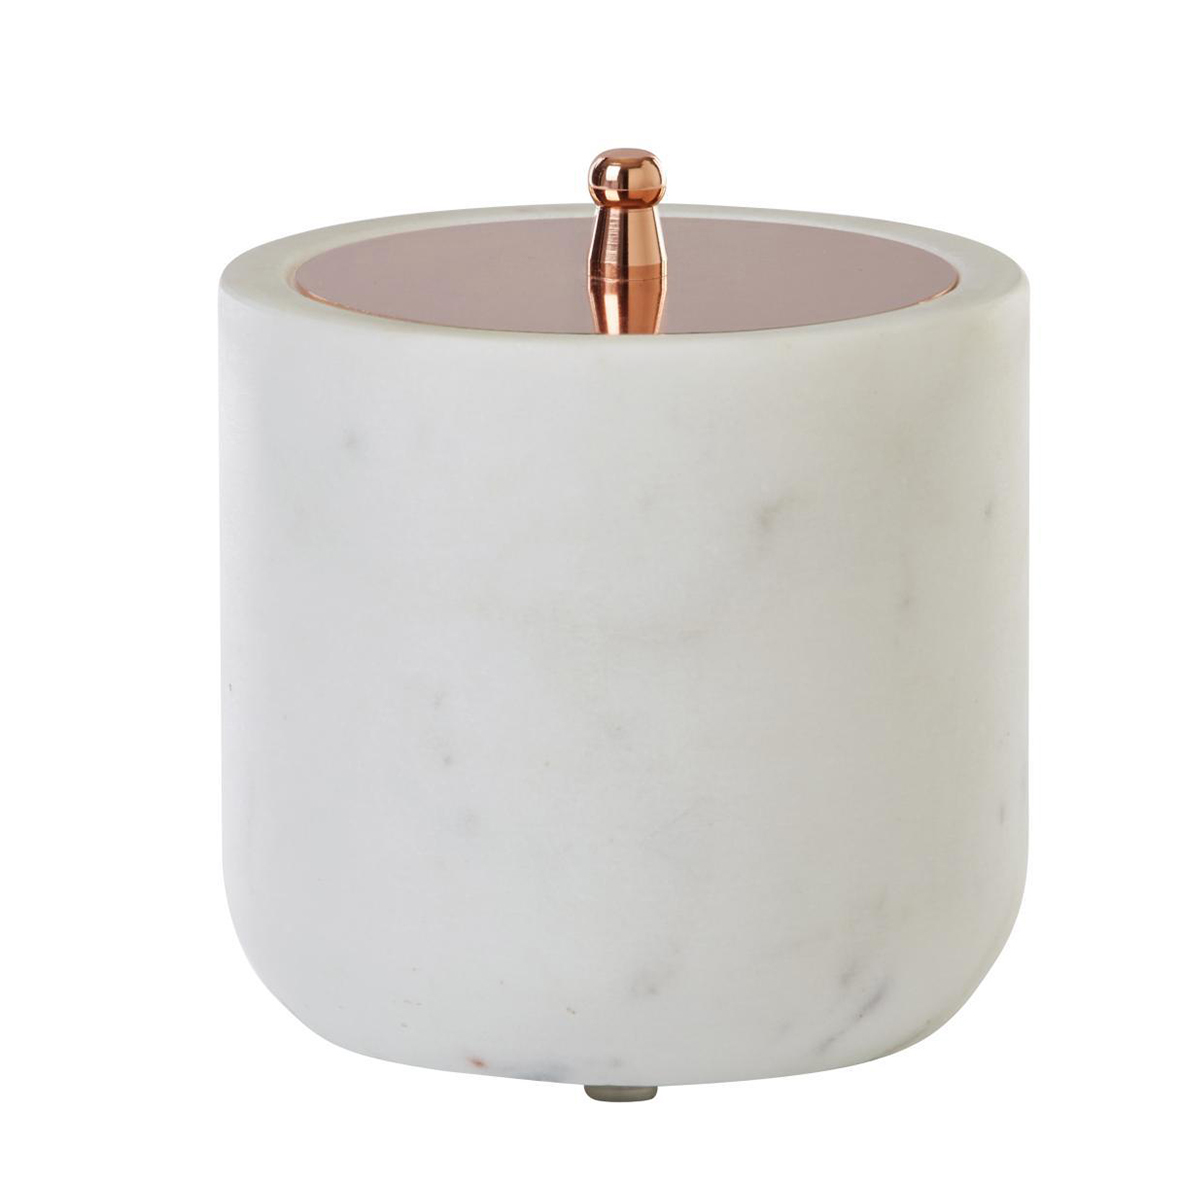 White marble bathroom canister with a rose gold accent. photo